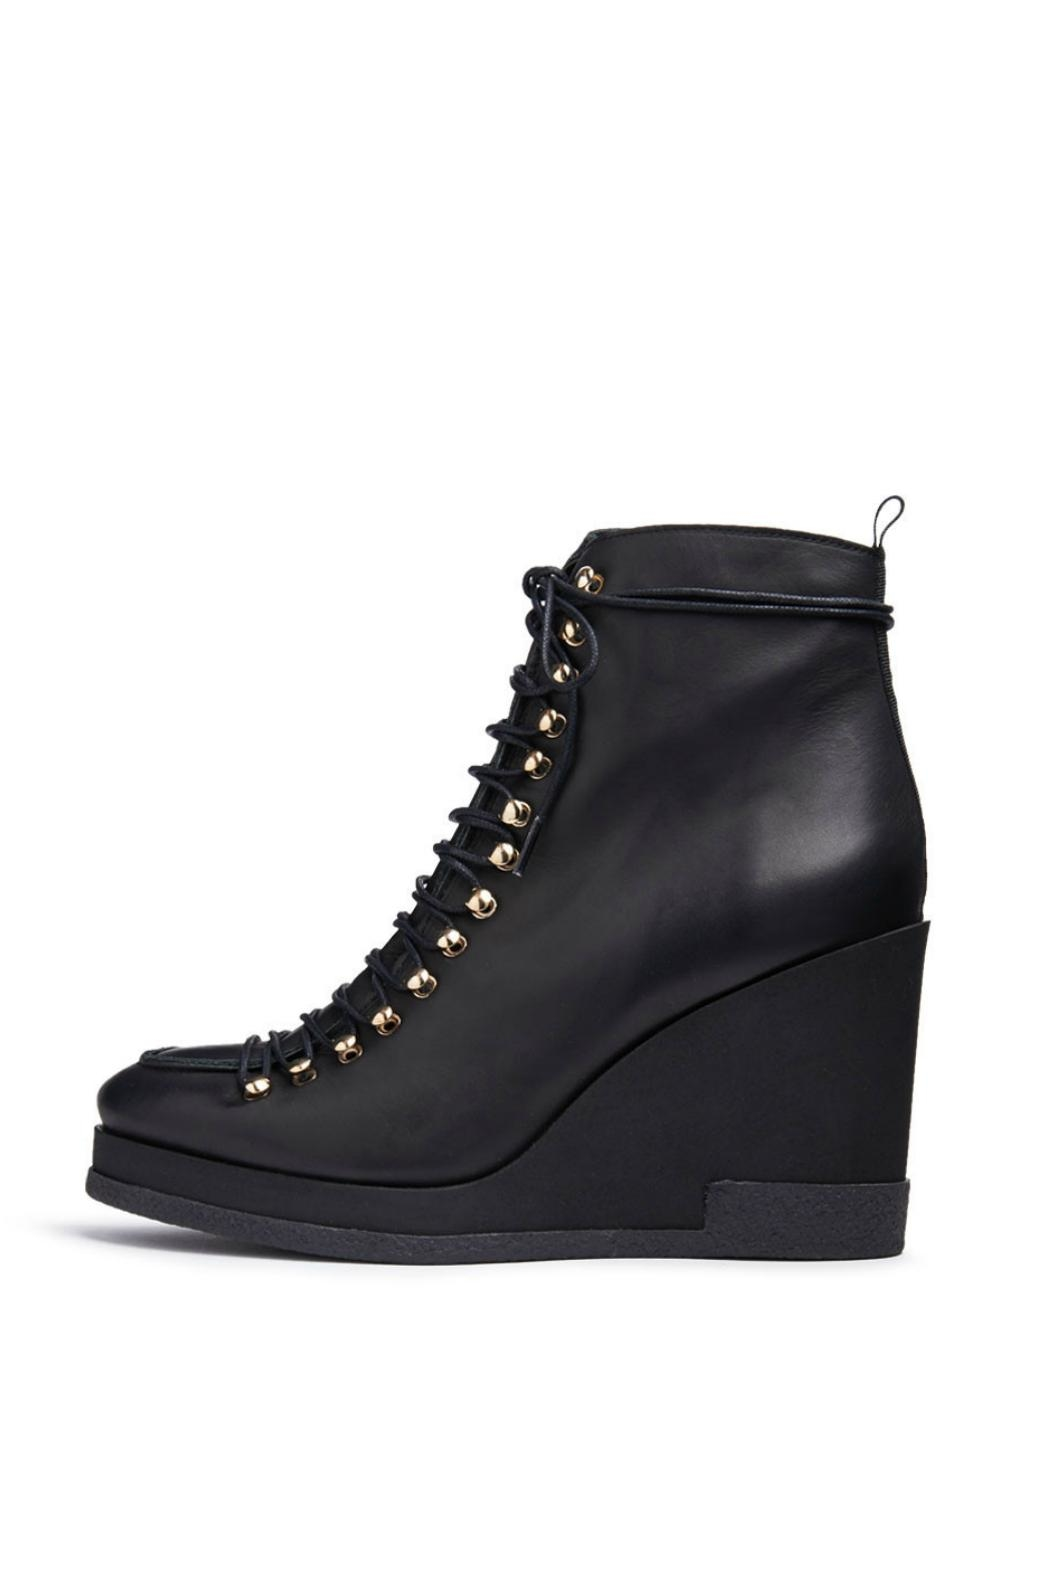 Miista Leather Lace-Up Wedge - Main Image